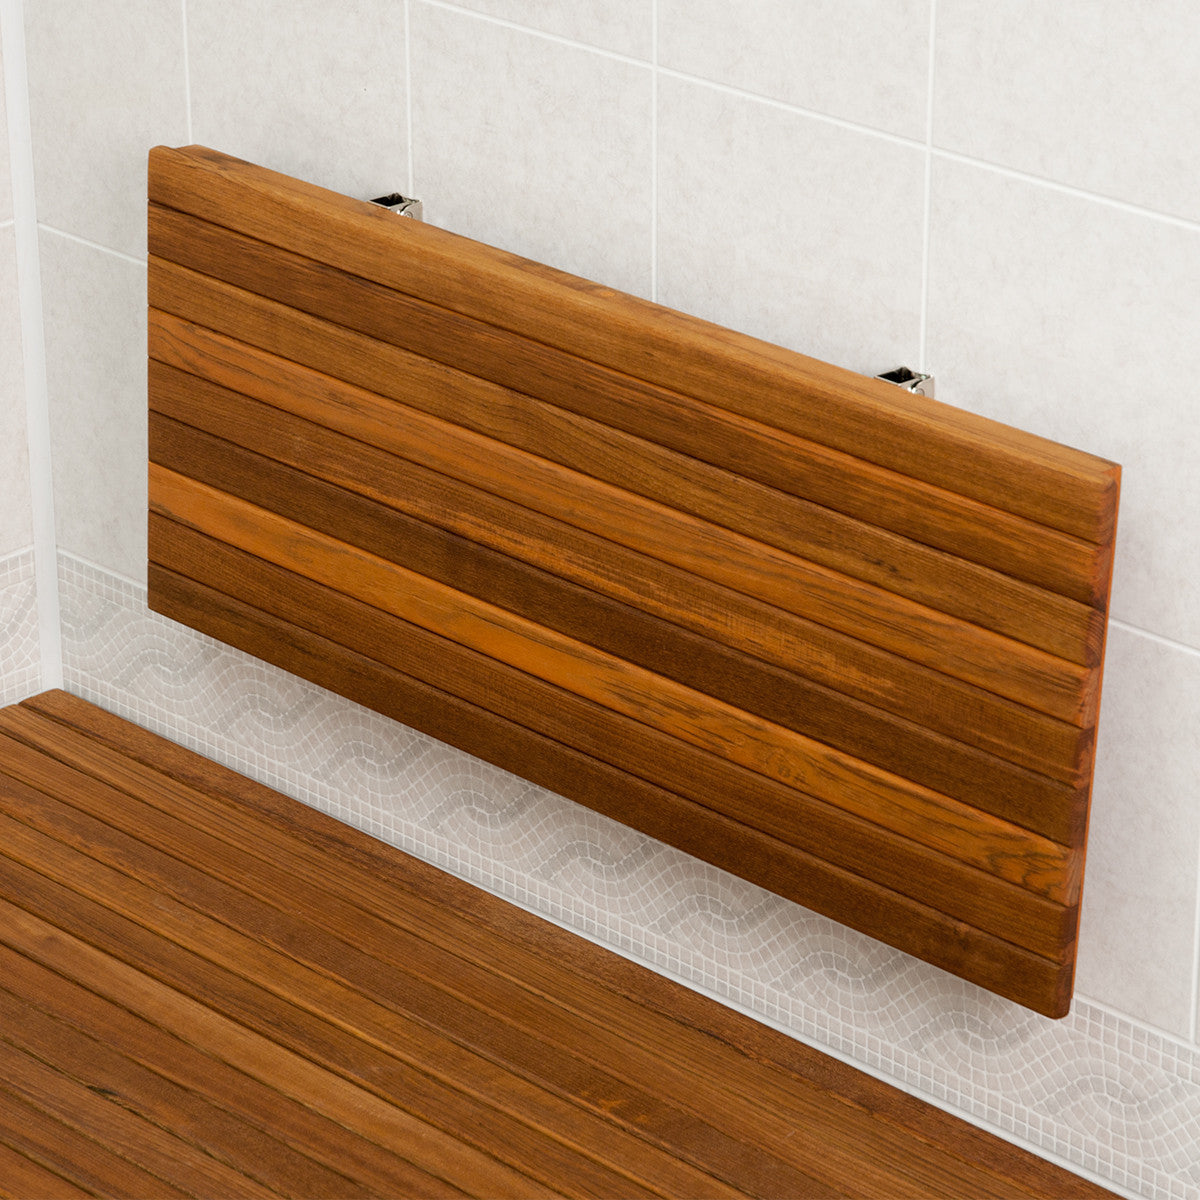 Wall Mounted Folding Teak Shower Bench: Stylish Bathroom Safety - Boomly